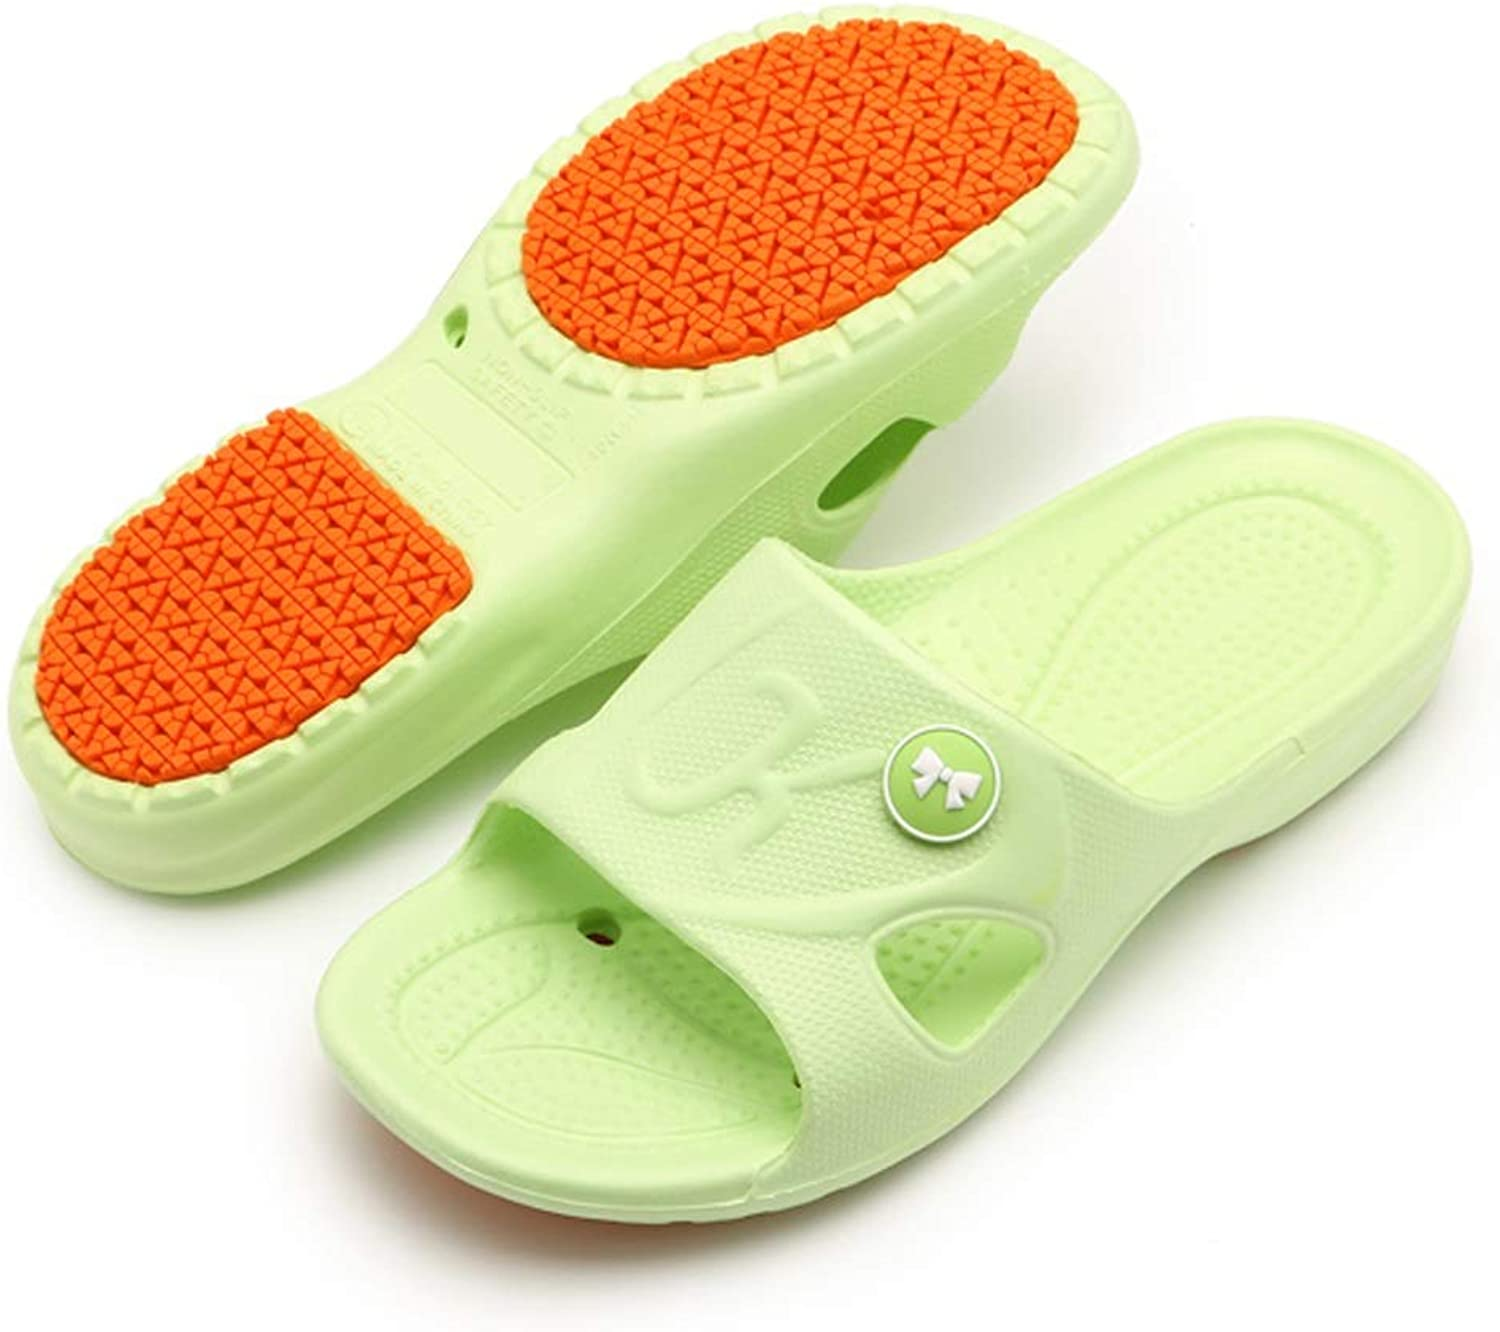 Xiao Jian Non-Slip Slippers Massage for The Elderly Men and Women Summer Bath Home Slippers Slippery flip Flop (color   A, Size   43-44)